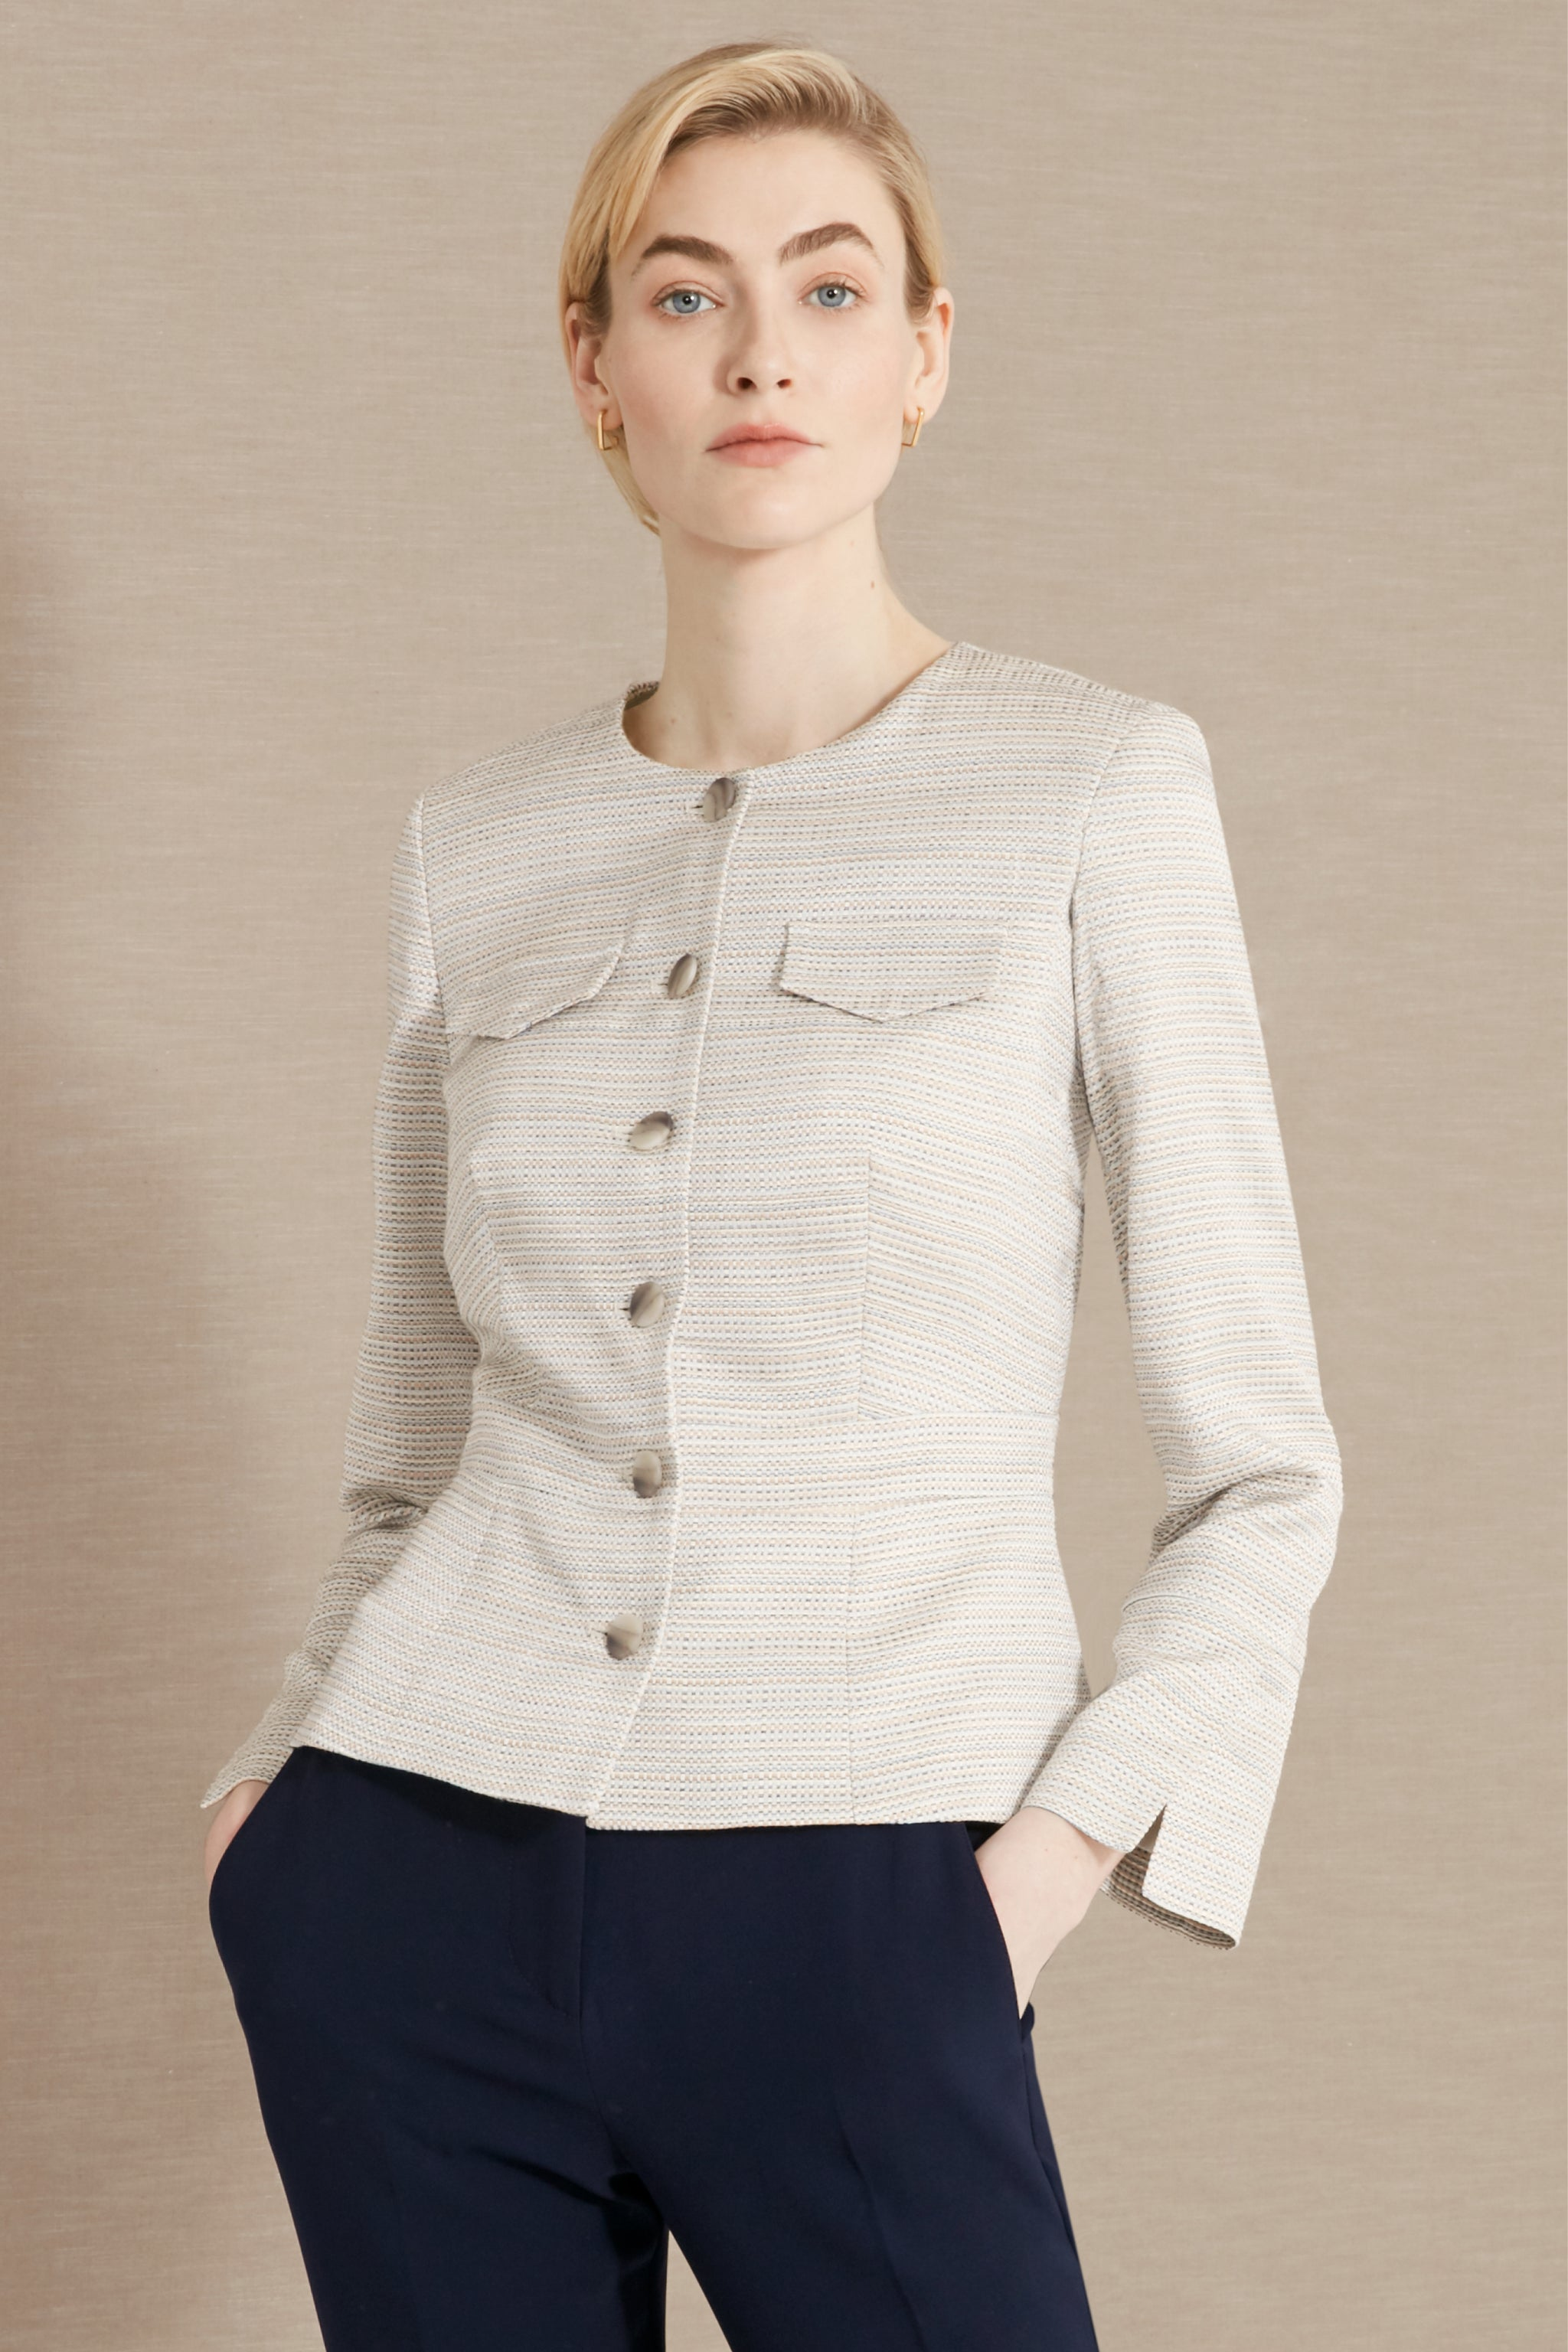 Connaught Summer Jacquard Jacket